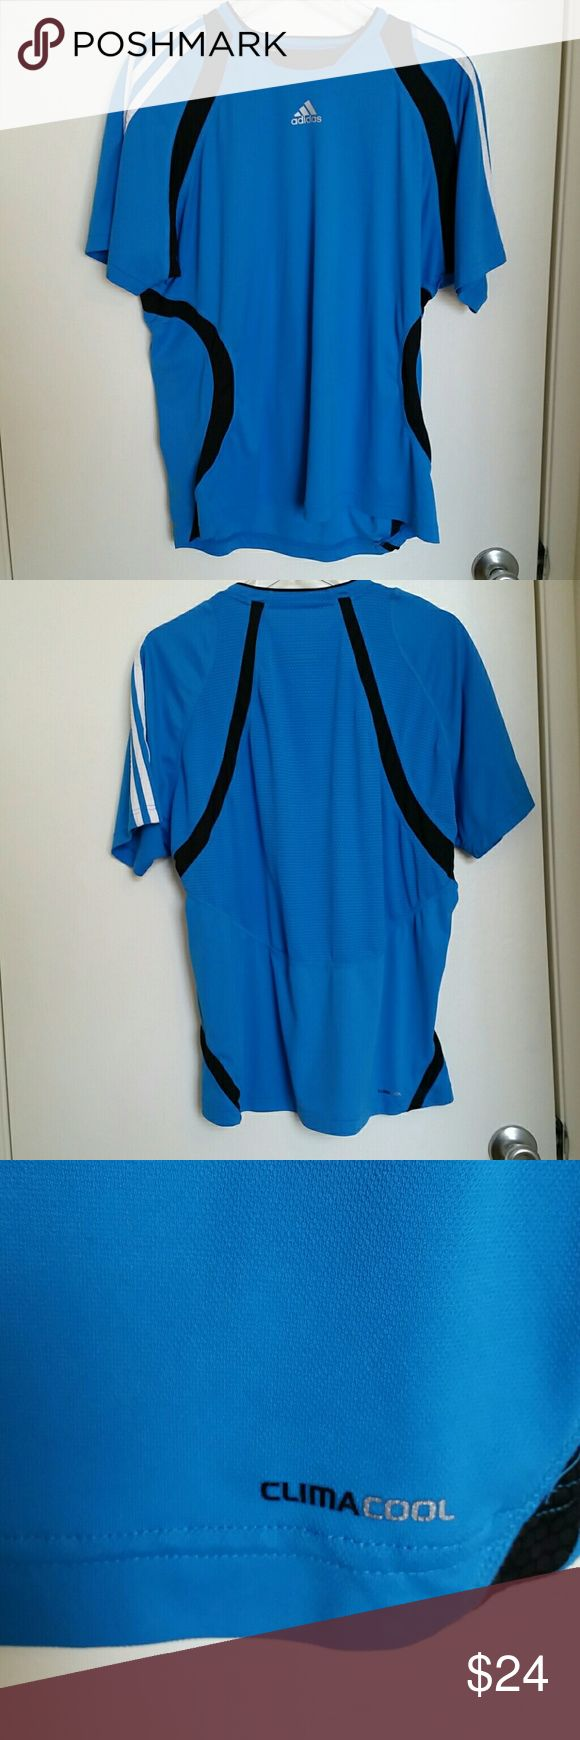 Adidas workout shirt I'm wearing my Adidas workout shirt, ready to be sold. Make me an offer because my girlfriend prefers Nike. Adidas Shirts Tees - Short Sleeve